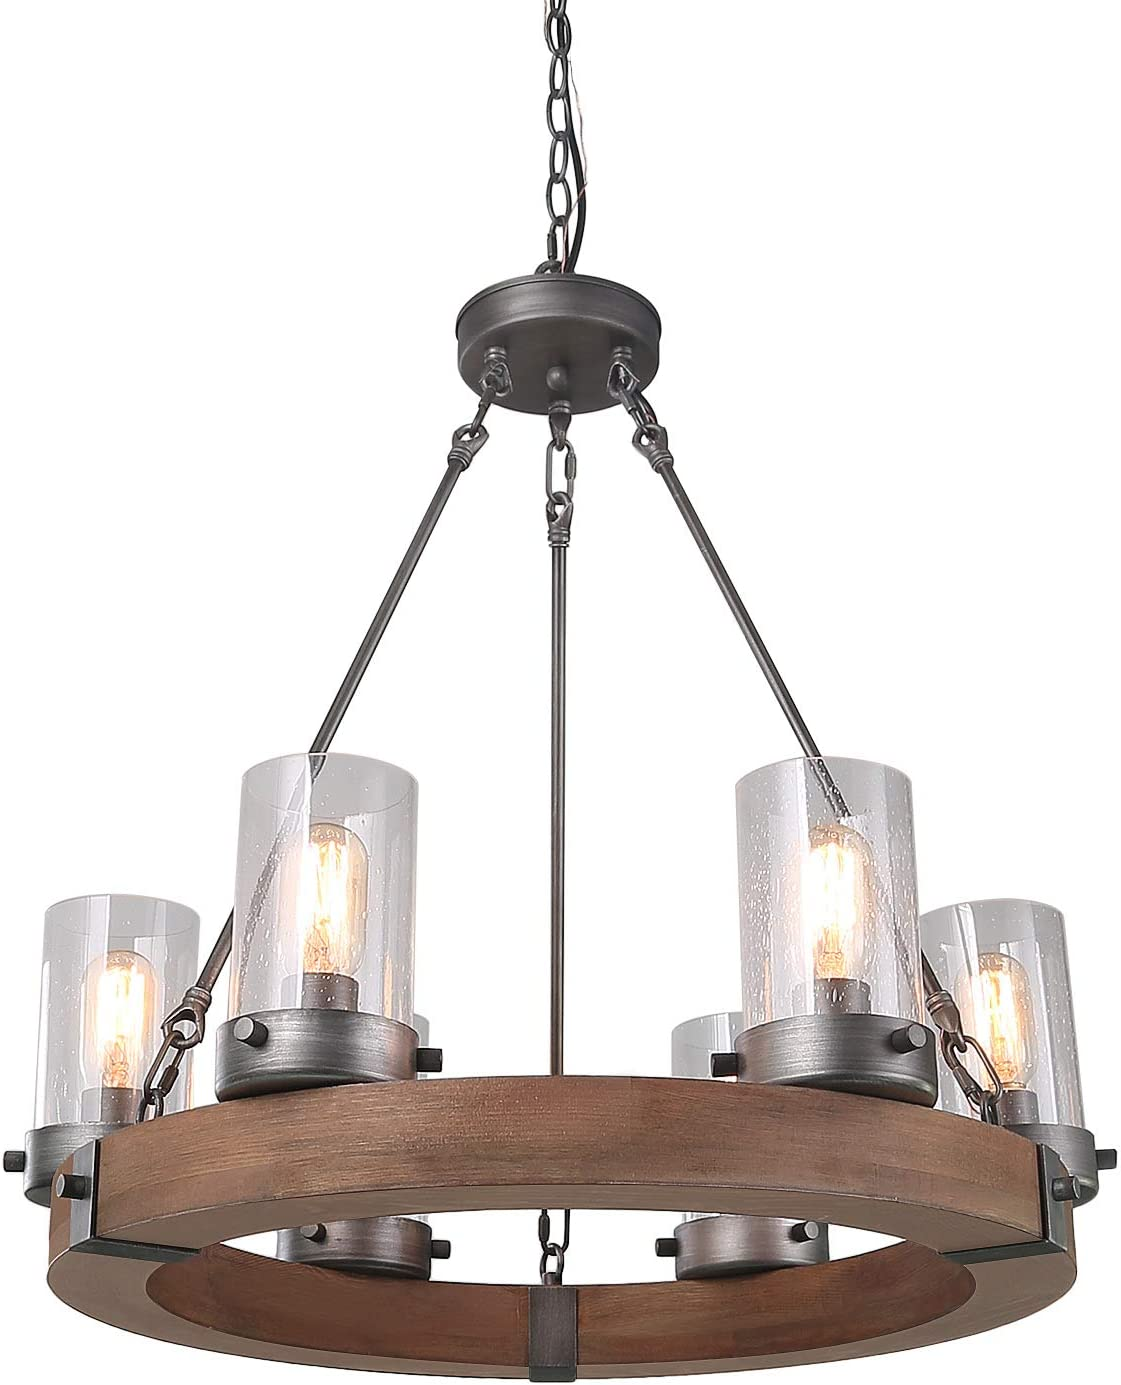 LNC Wood Farmhouse Chandeliers for Dining Rooms Rustic Round Light Fixture, A03348